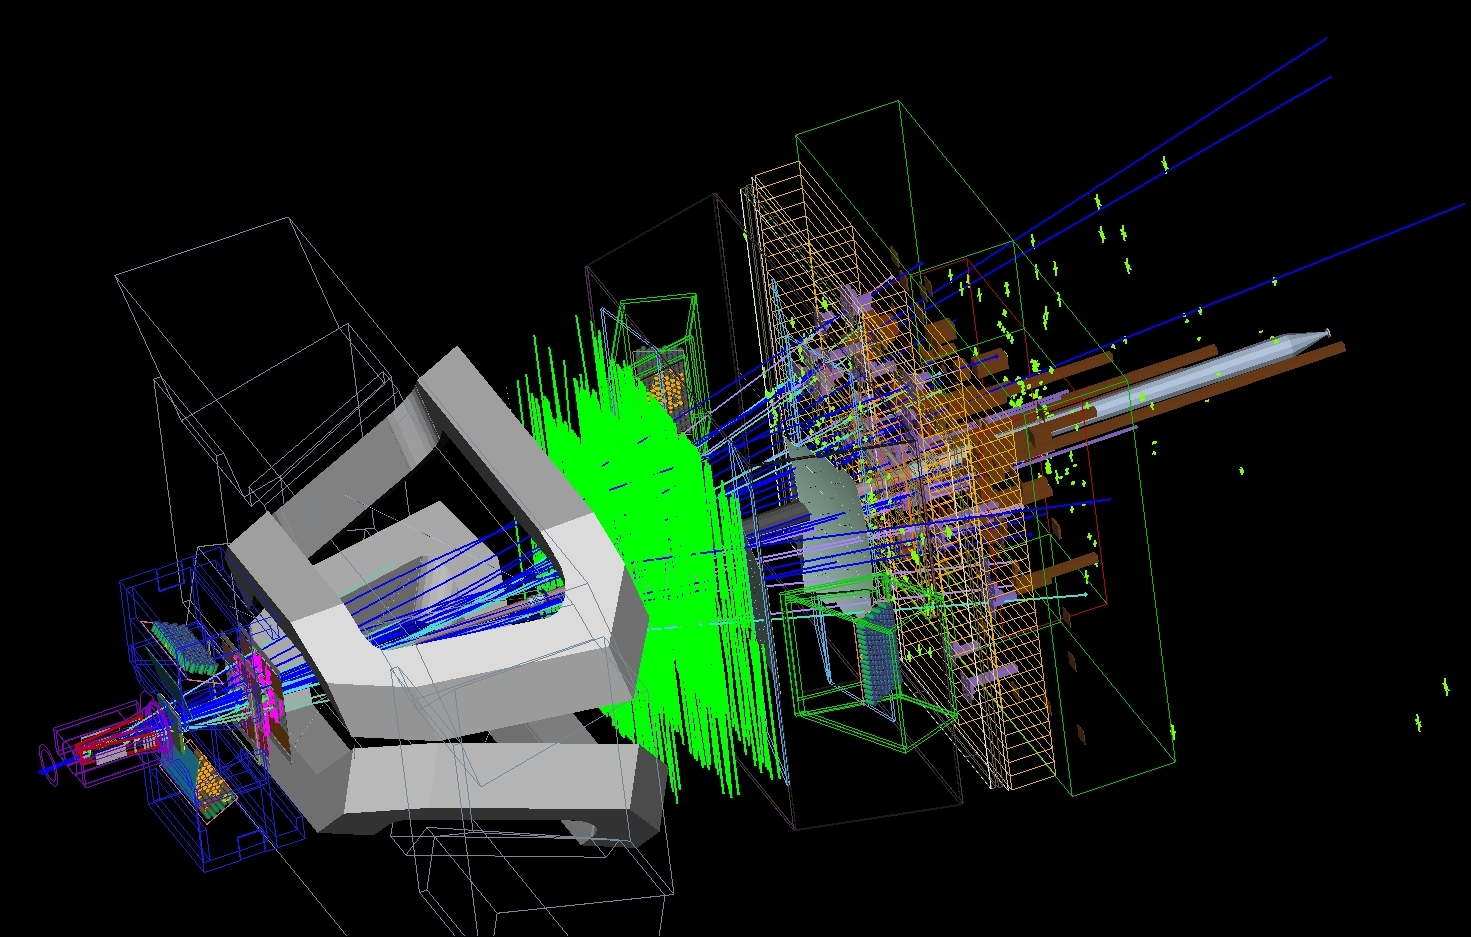 An experiment revealing the decay of beauty meson at cern in 2011 and 2012